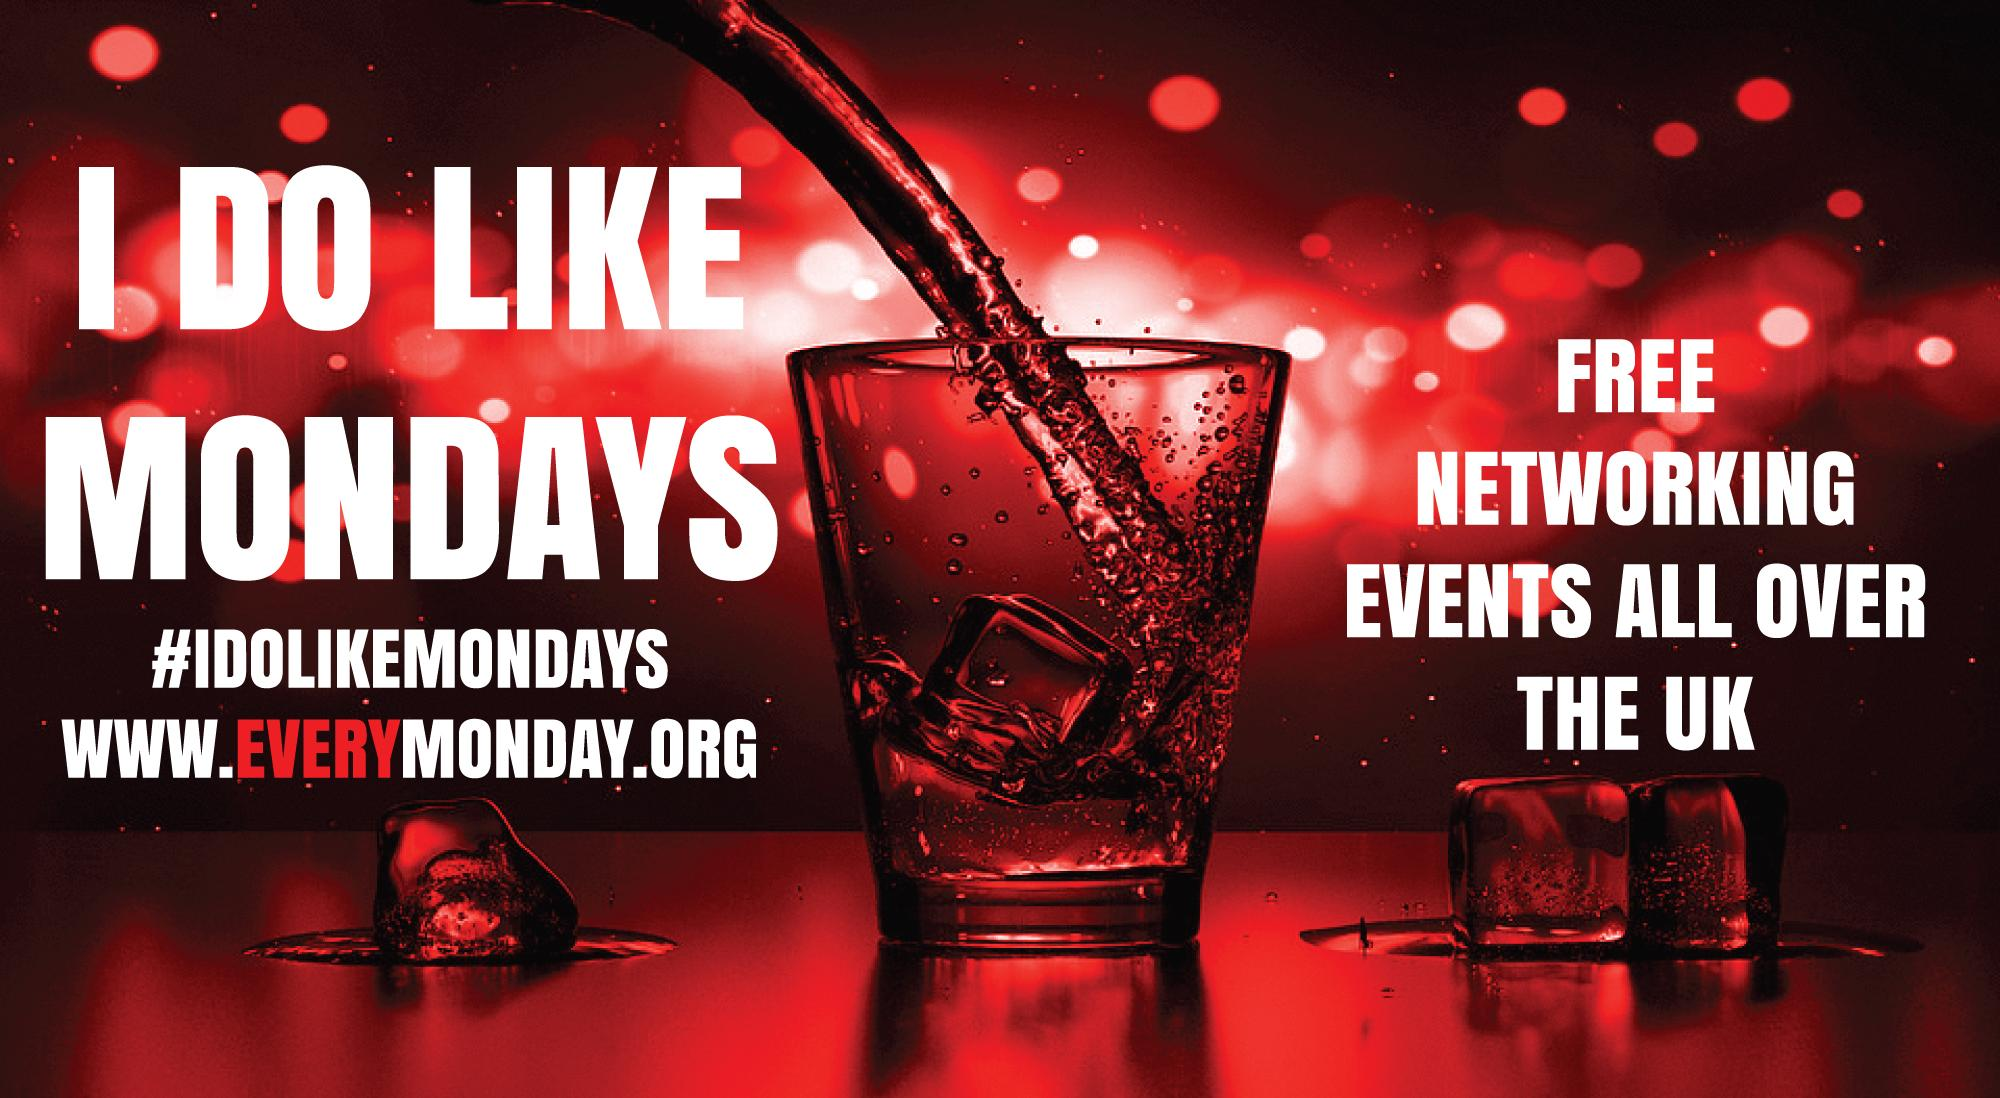 I DO LIKE MONDAYS! Free networking event in Bracknell